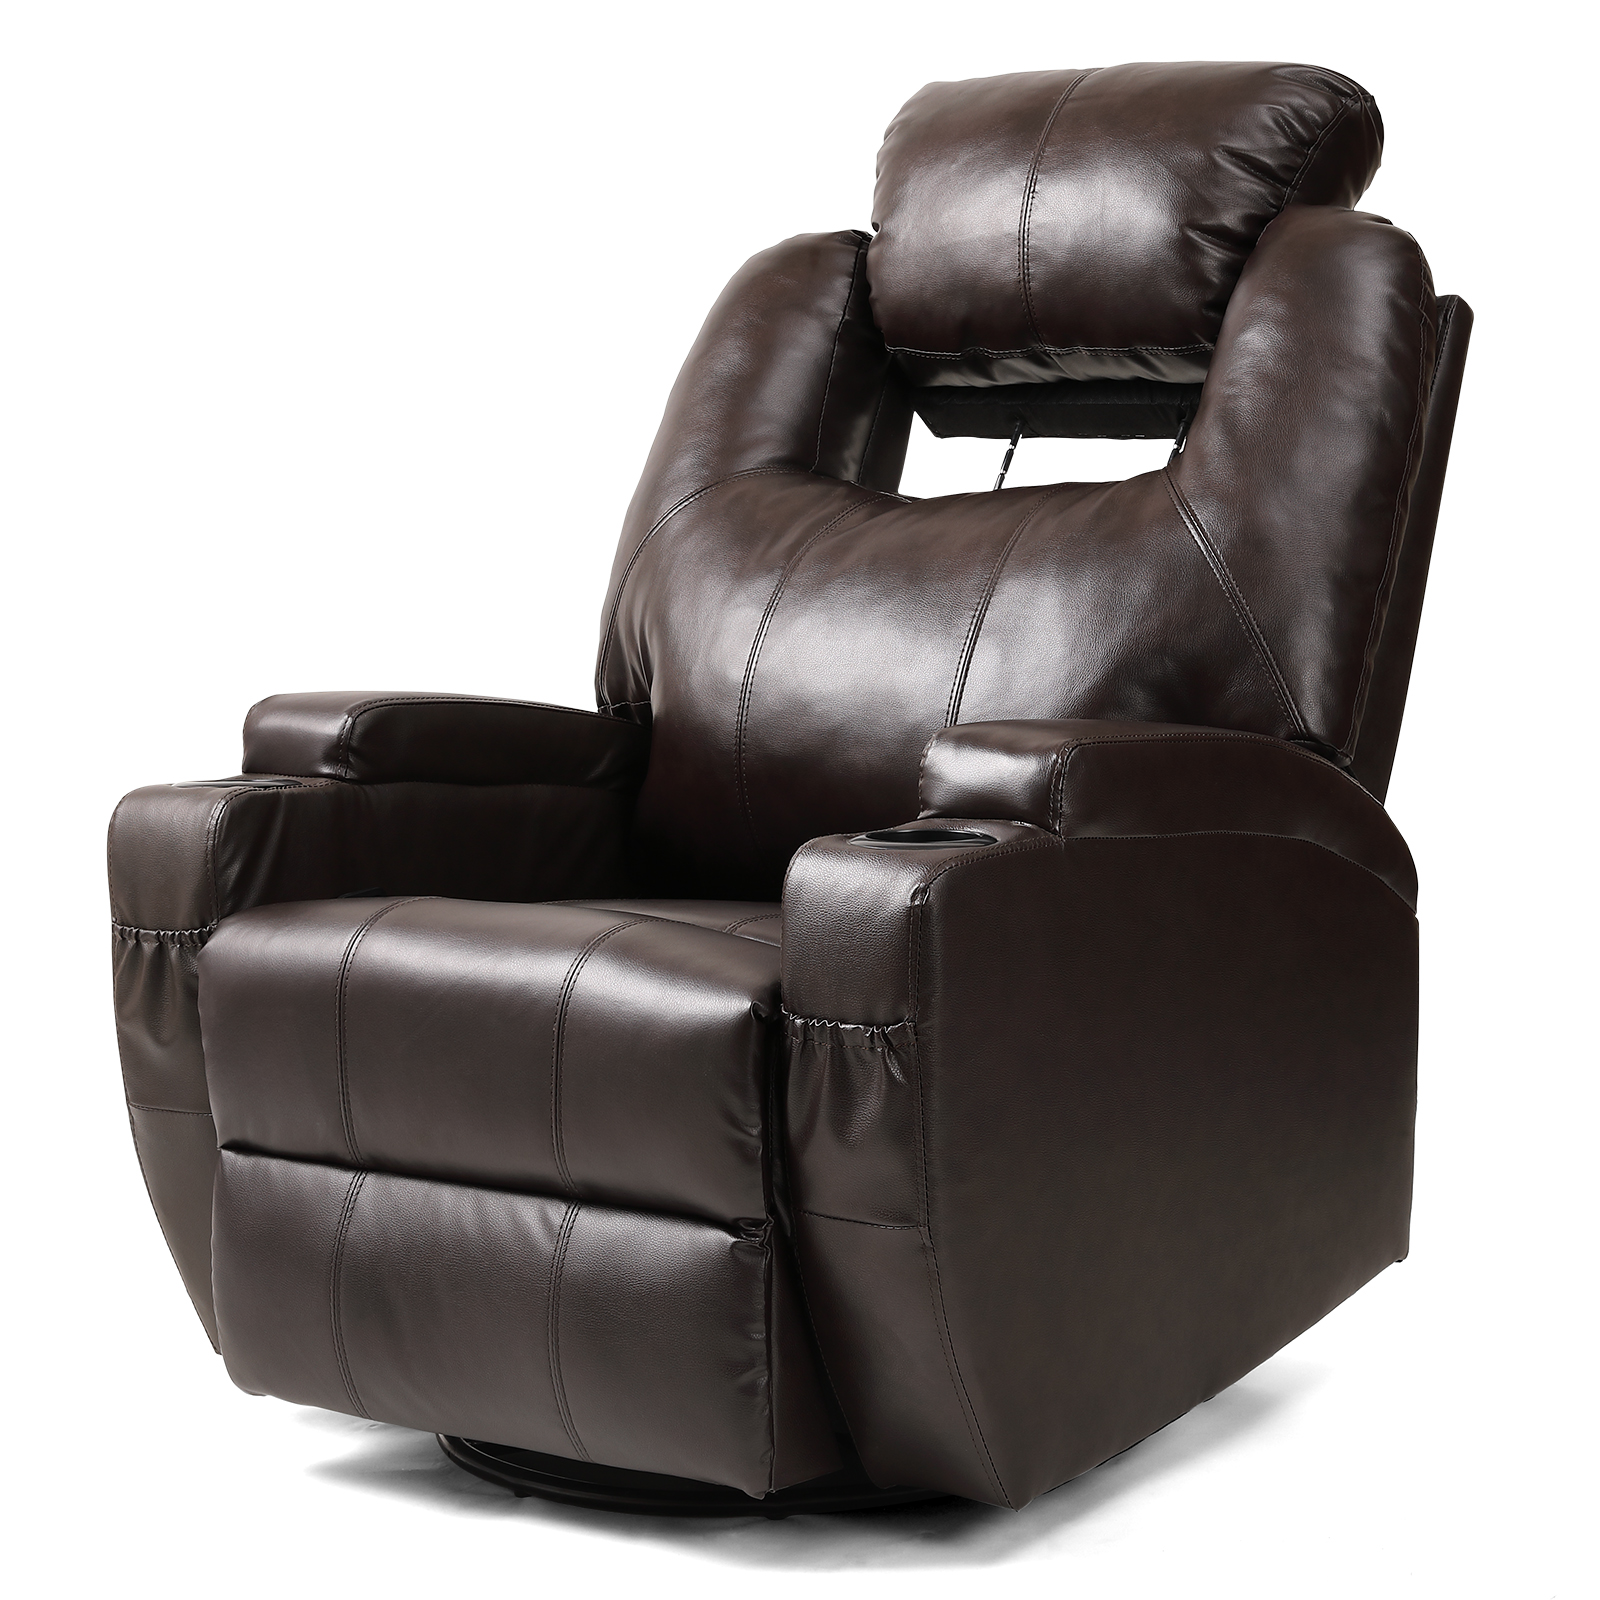 Pleasant Details About Full Body Electric Massage Chair Zero Gravity Recline Deluxe Heated Leather Sofa Bralicious Painted Fabric Chair Ideas Braliciousco